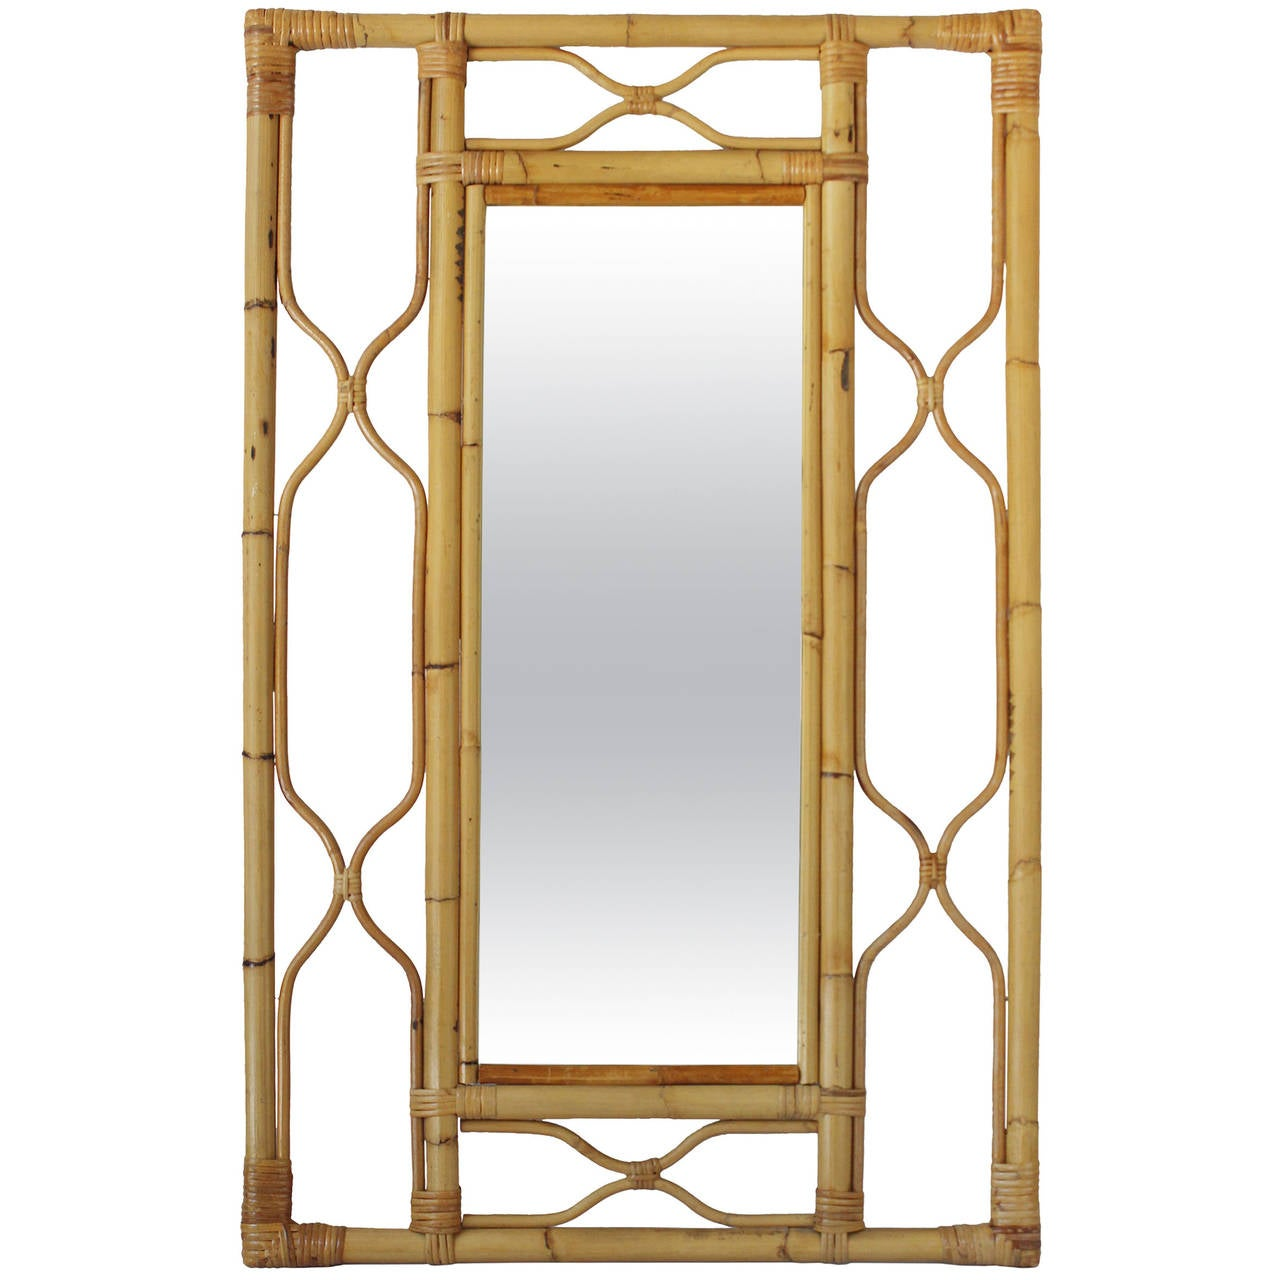 Bamboo frame mirror at 1stdibs for Mirror frame